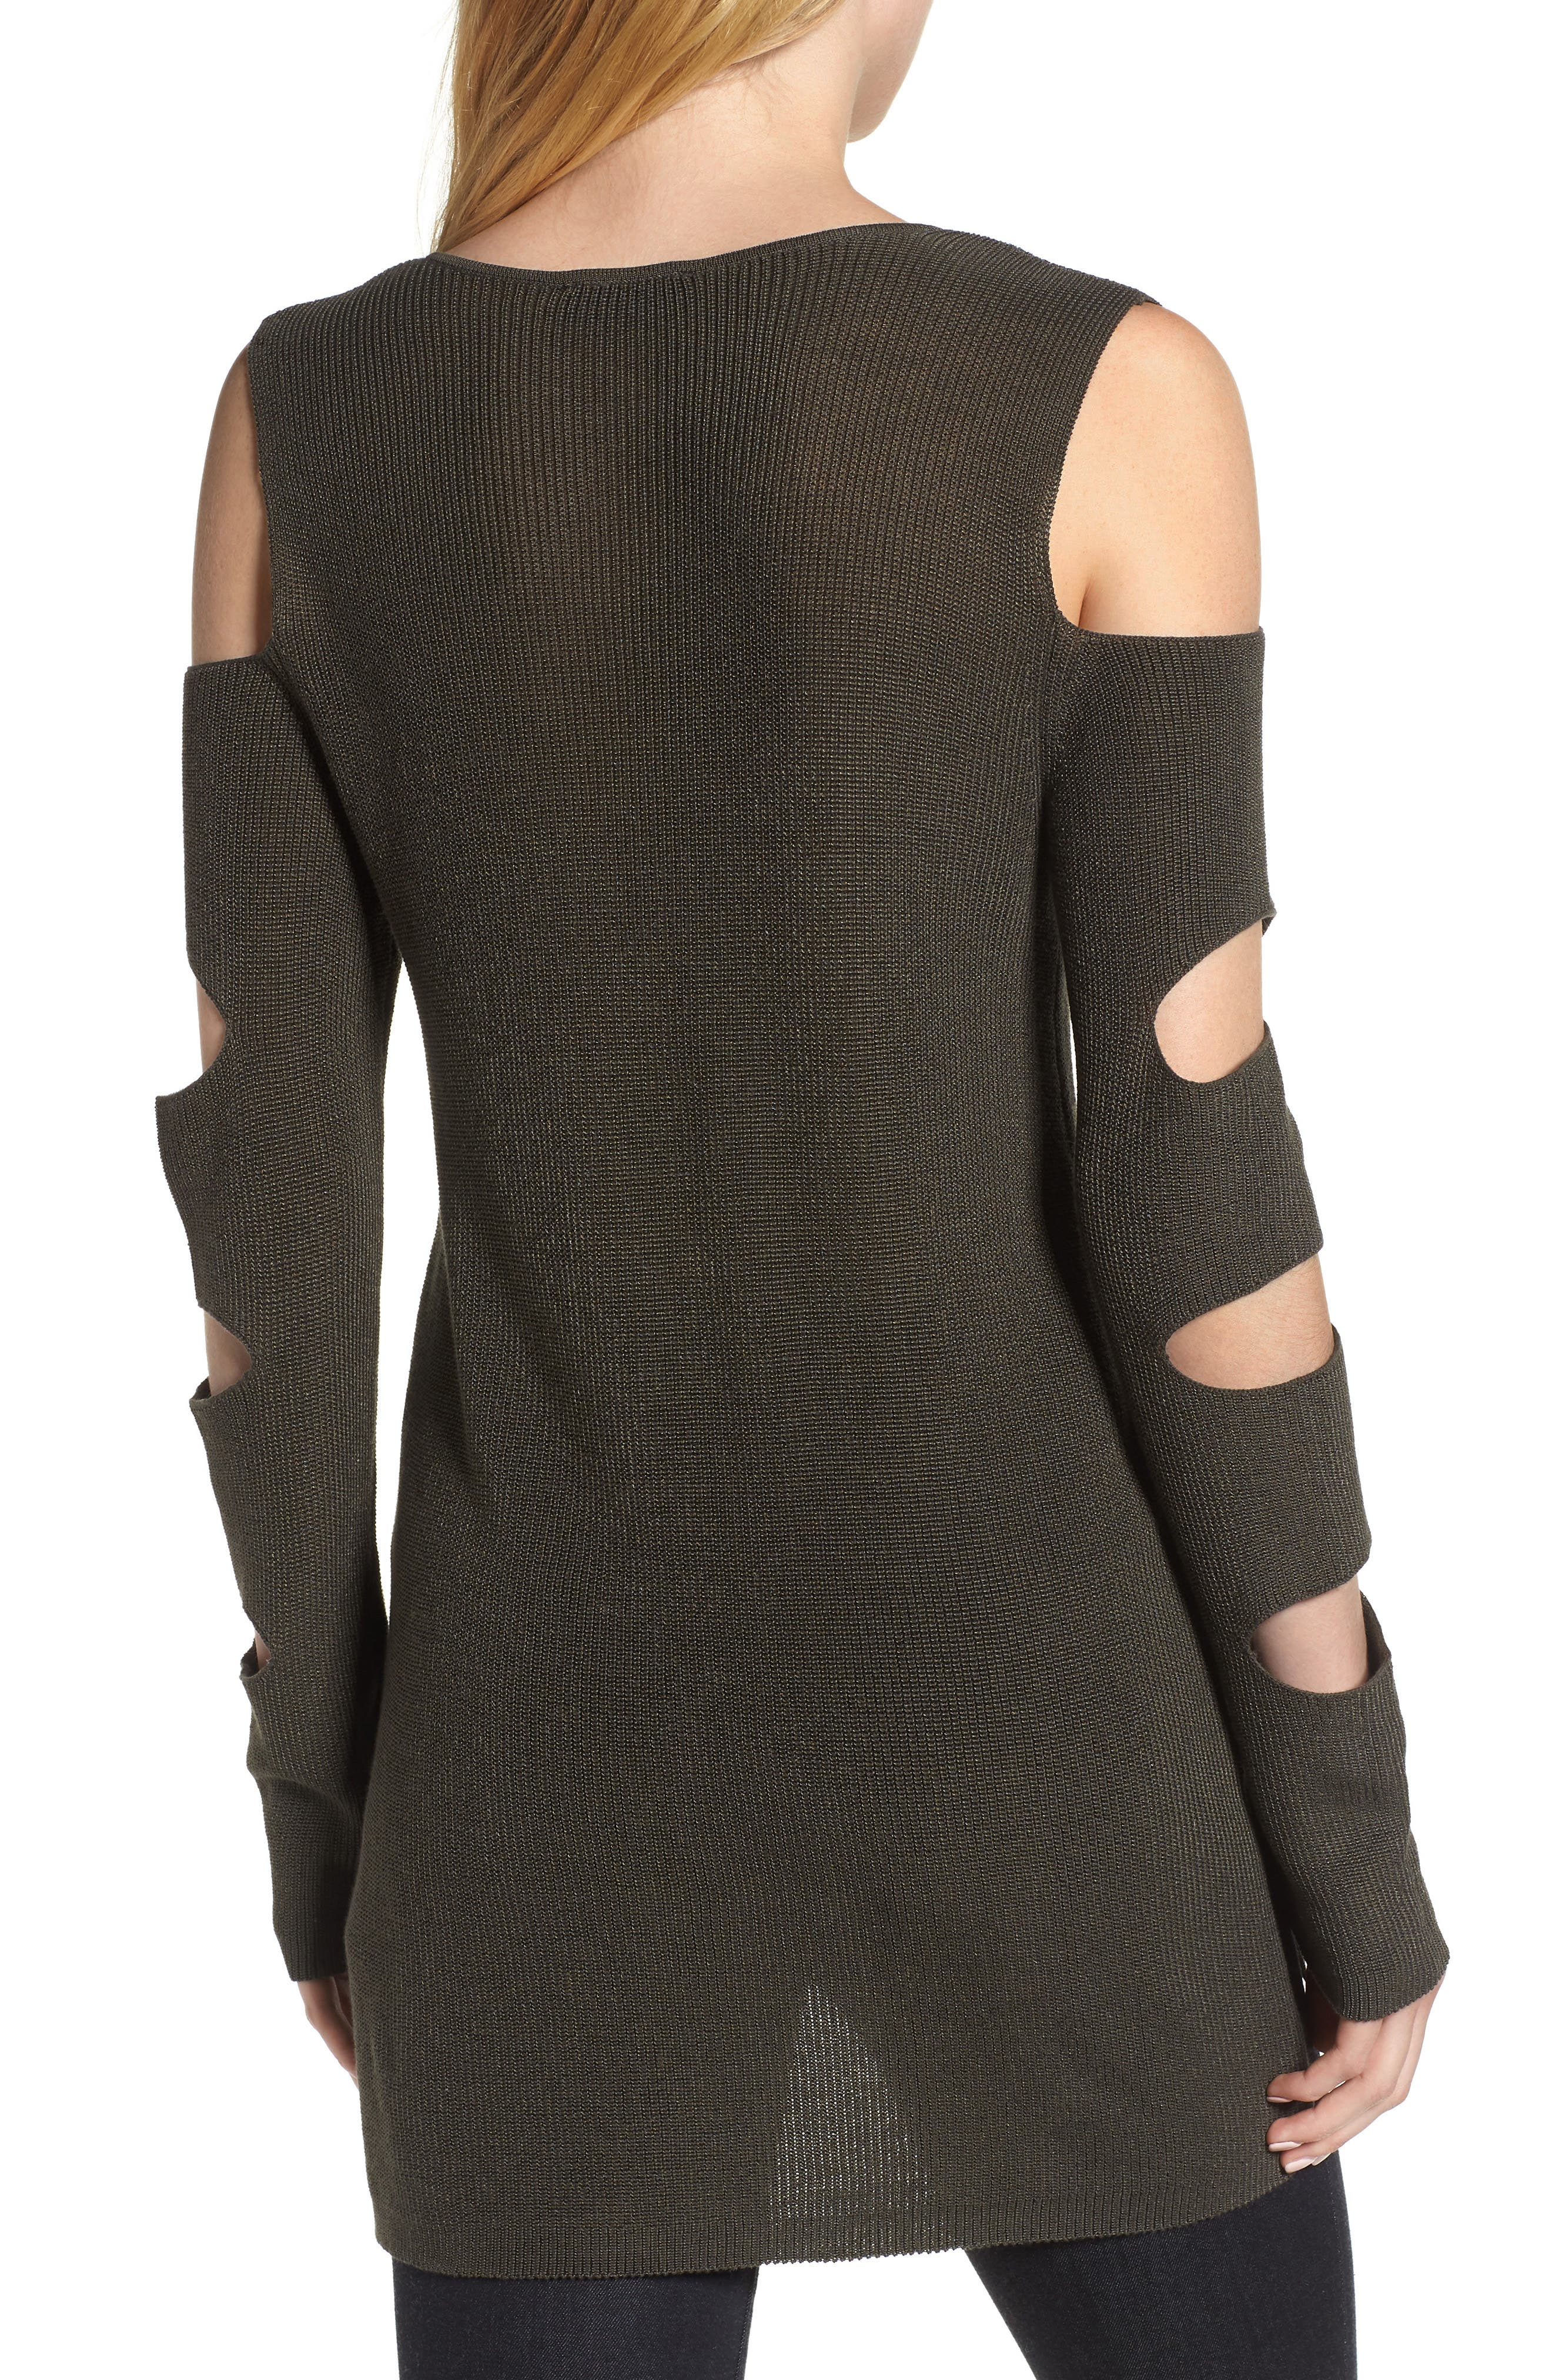 Cutout Sweater,                             Alternate thumbnail 2, color,                             OLIVE EARTH